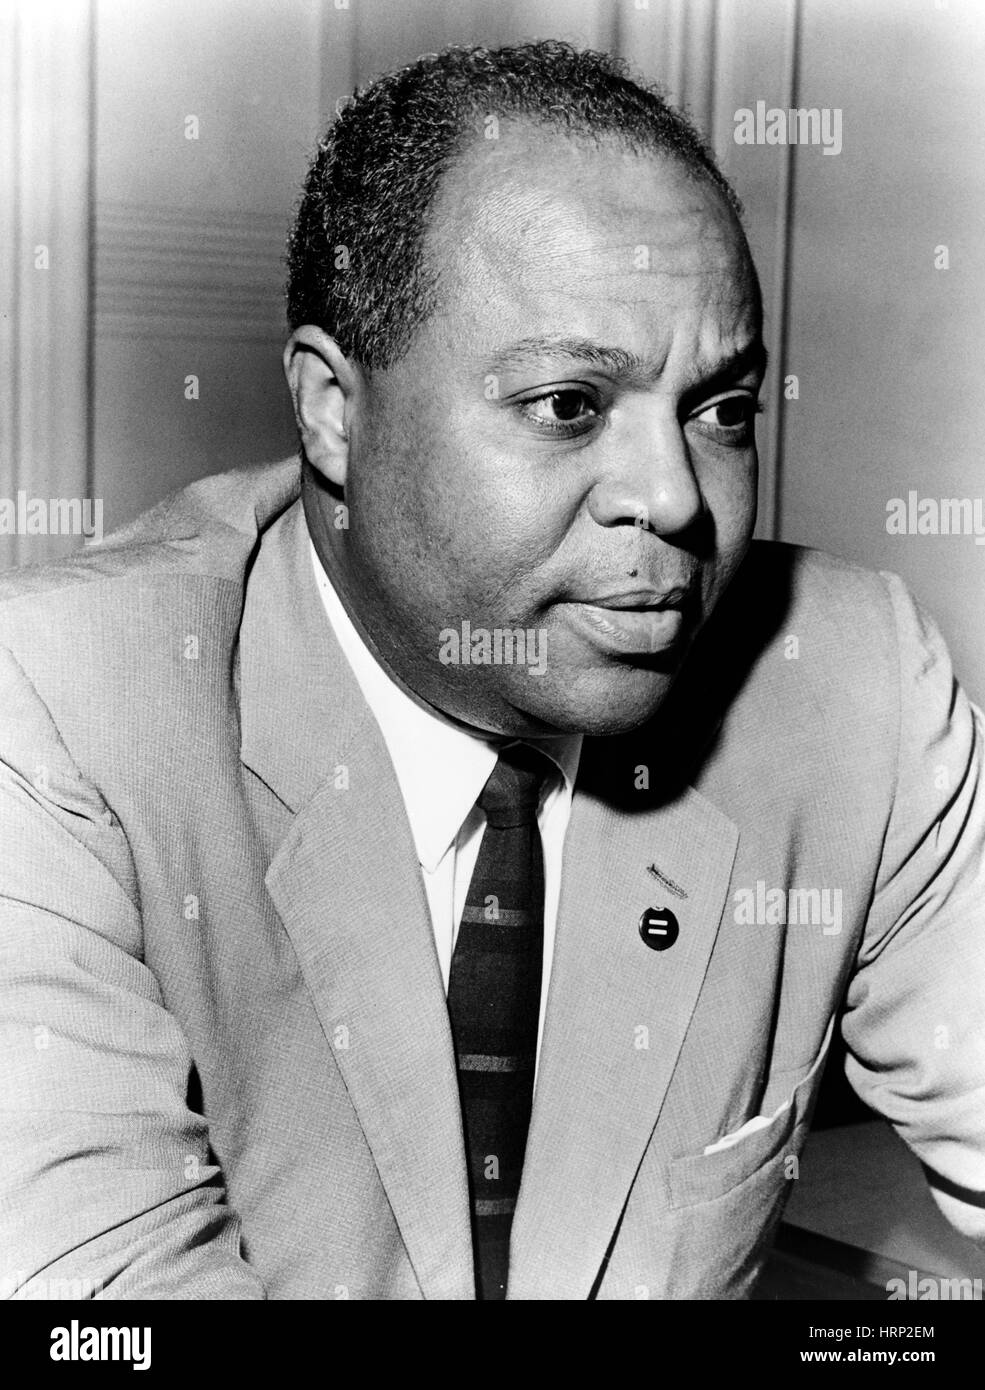 James Farmer, Civil Rights Leader - Stock Image